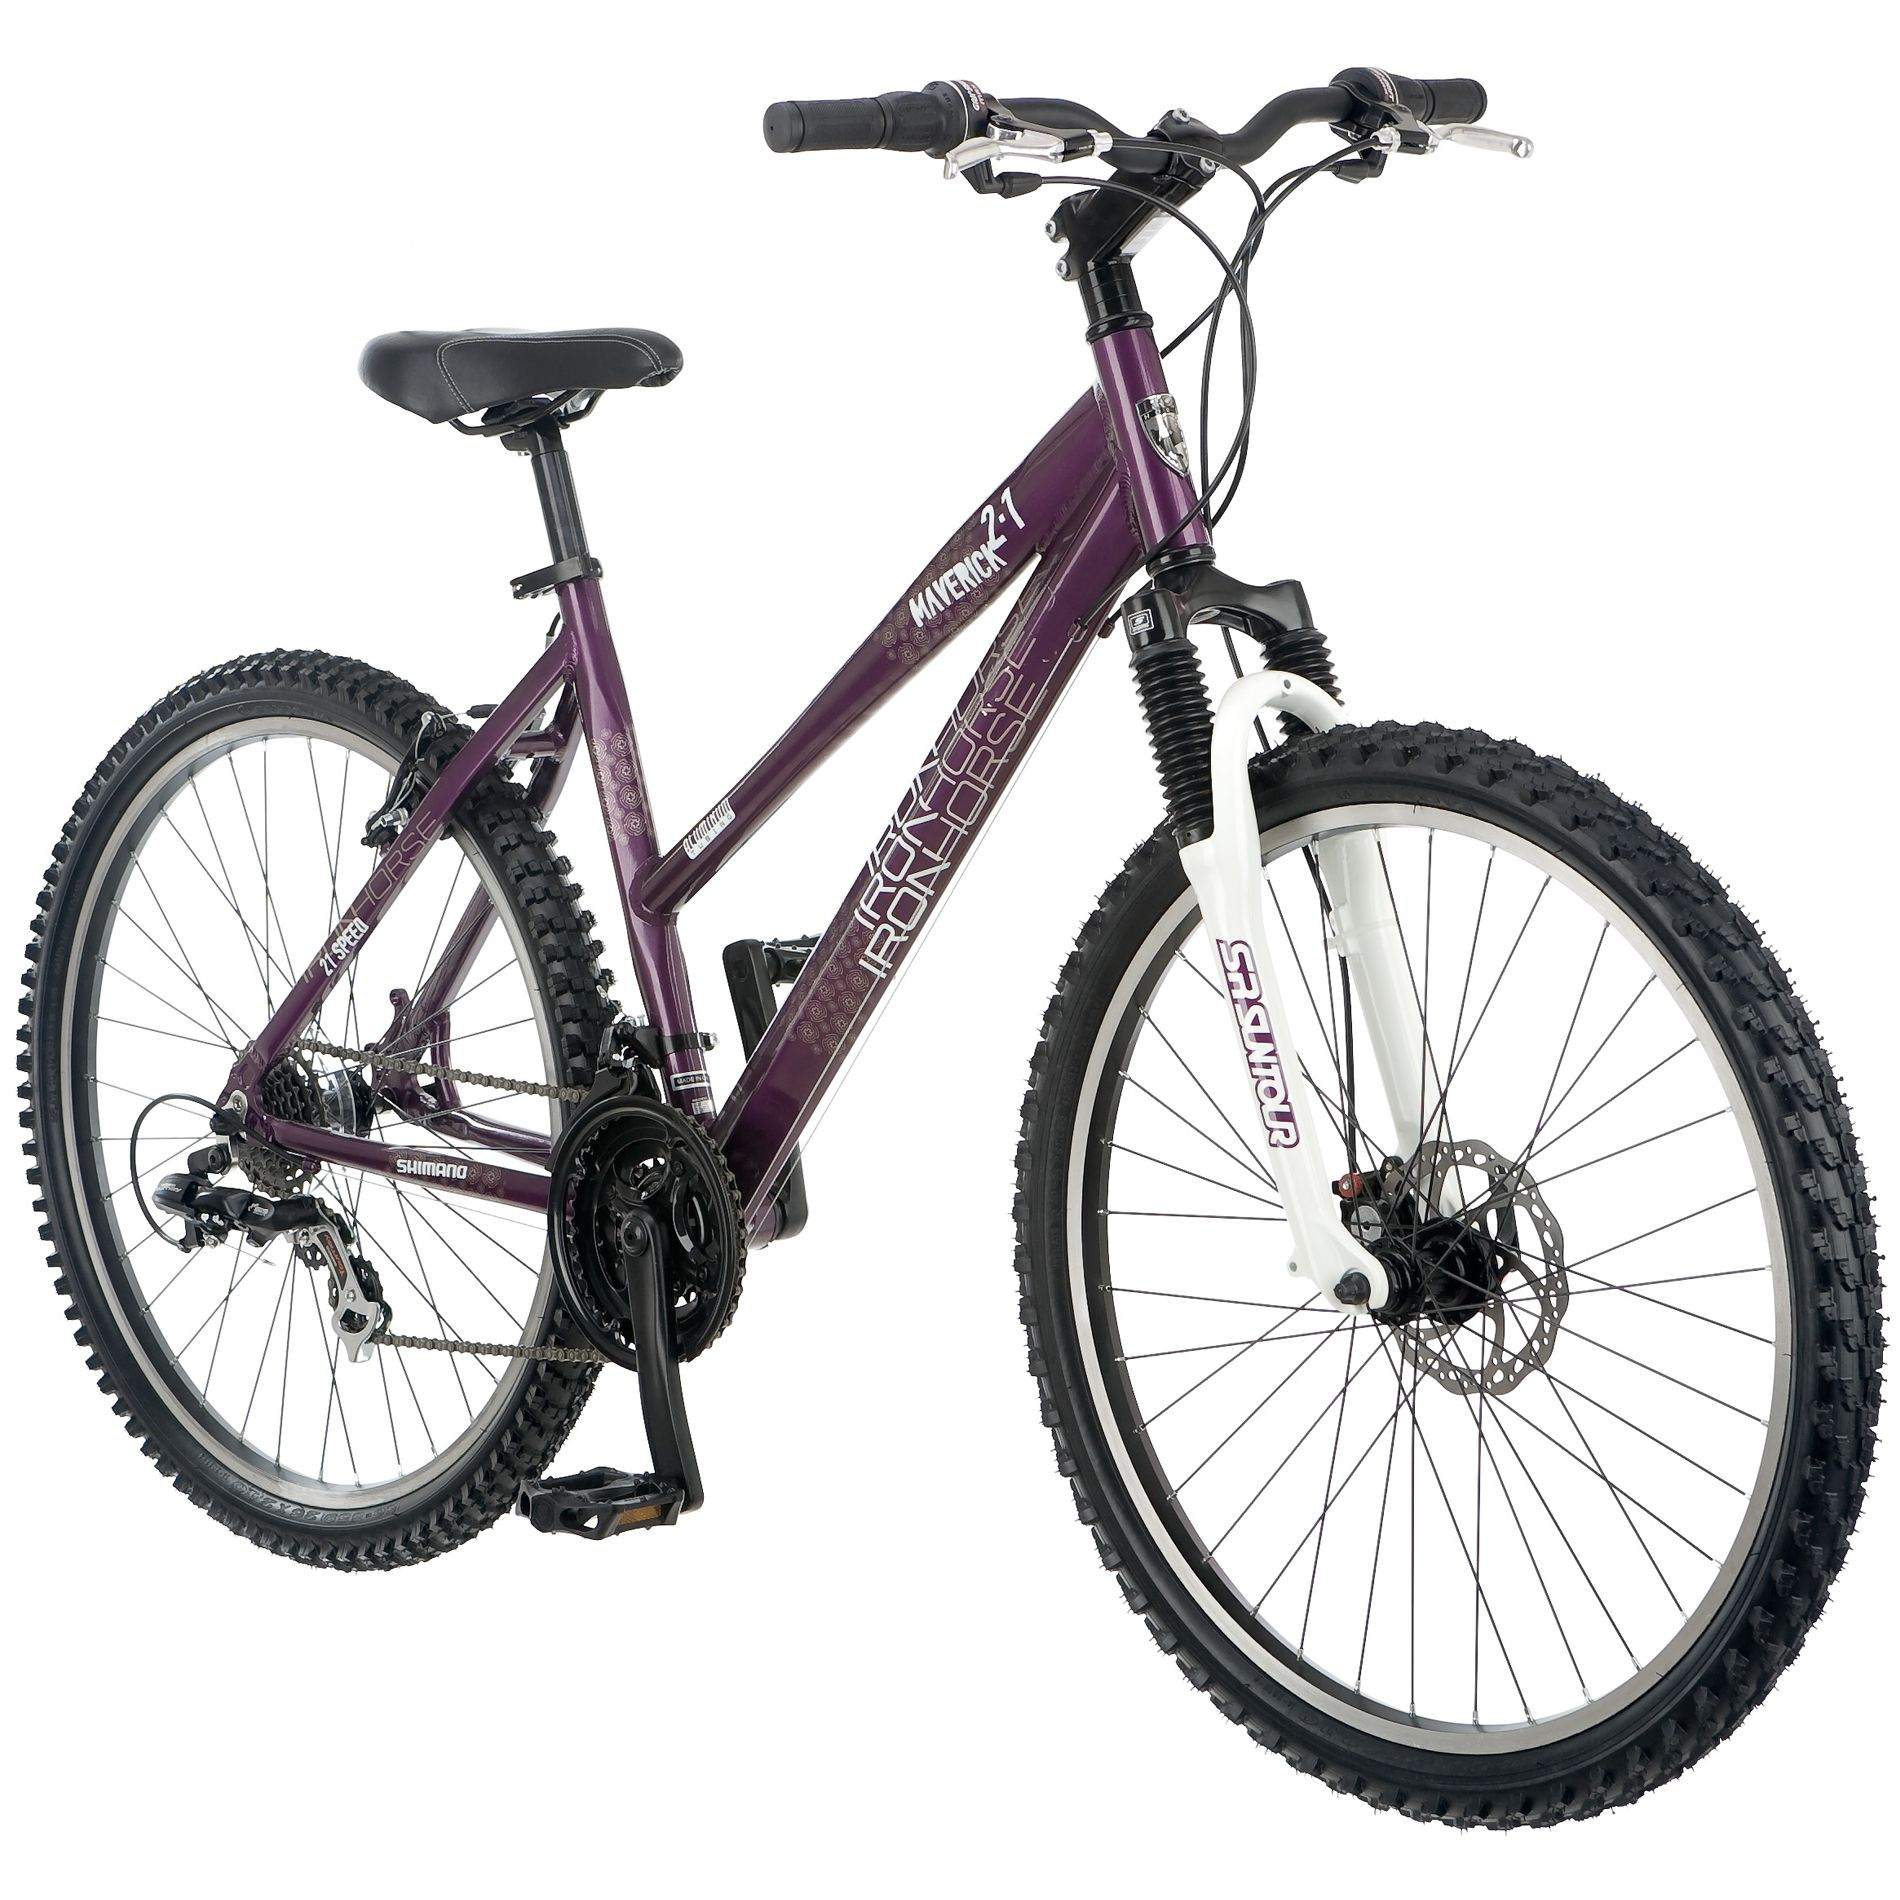 IRON HORSE Maverick 2.1 Women's 26 Inch Bike